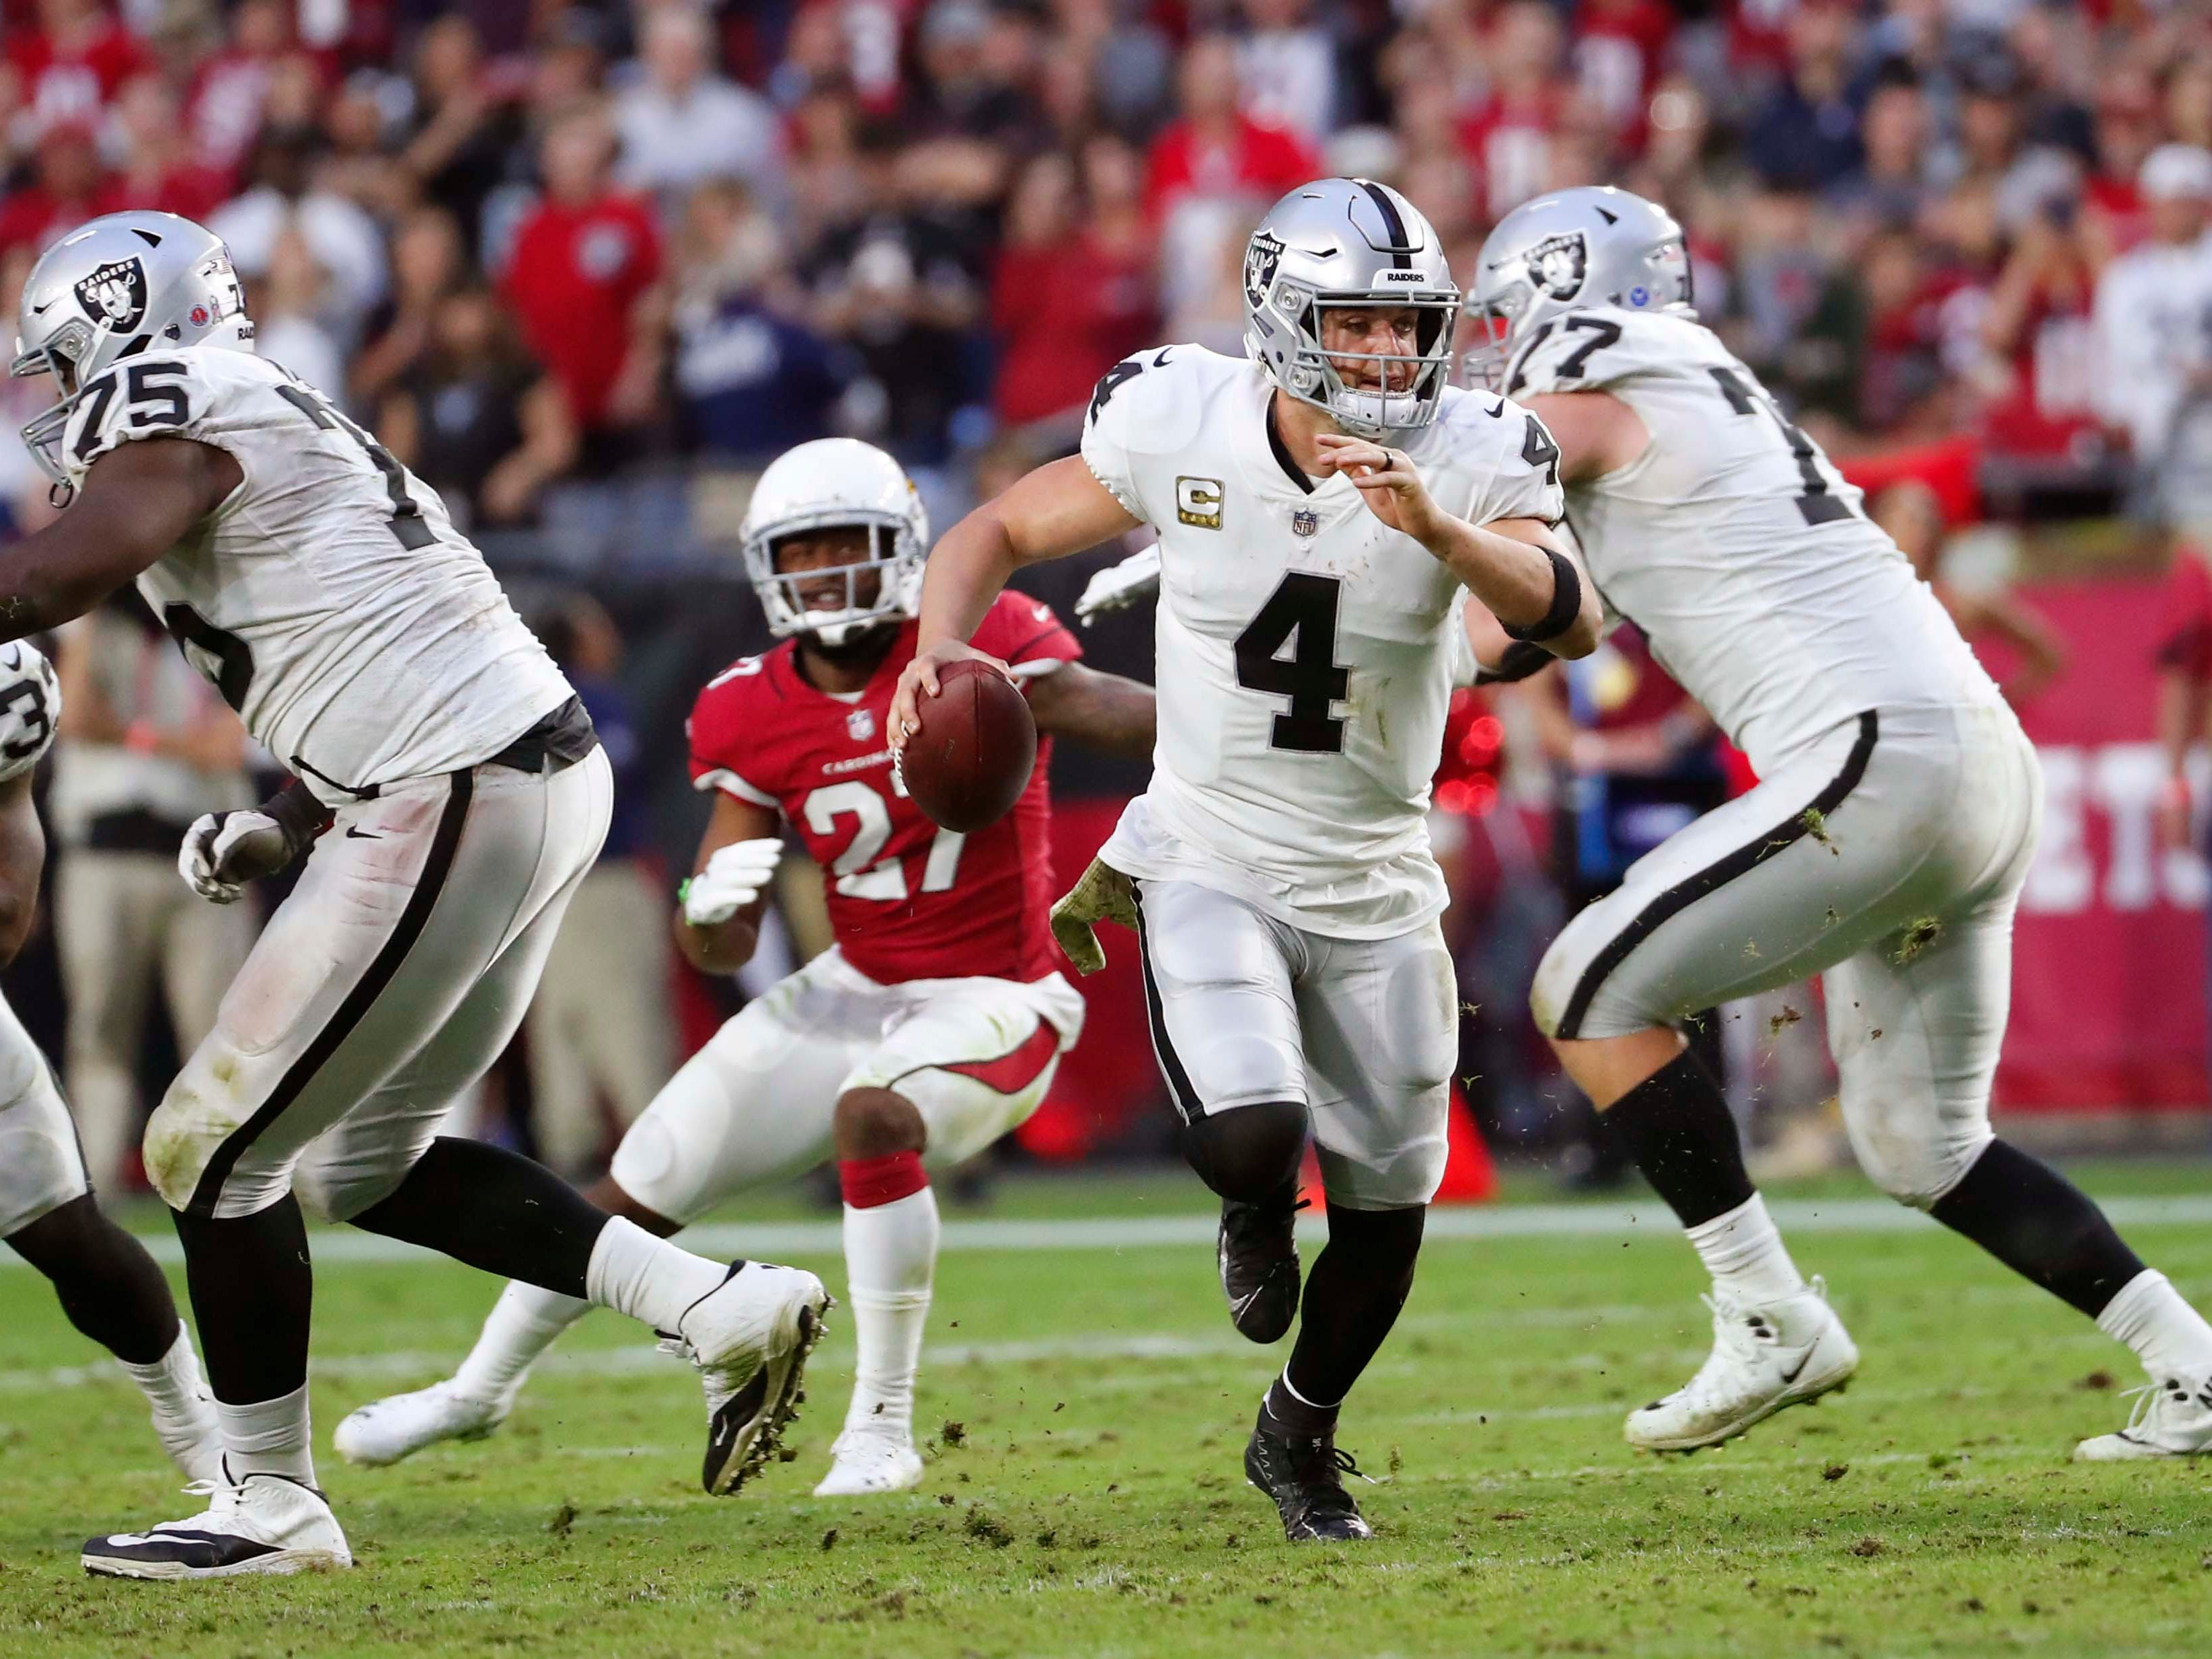 Oakland Raiders quarterback Derek Carr (4) scrambles away from pressure against the Arizona Cardinals during the fourth quarter Nov.18th at State Farm Stadium.